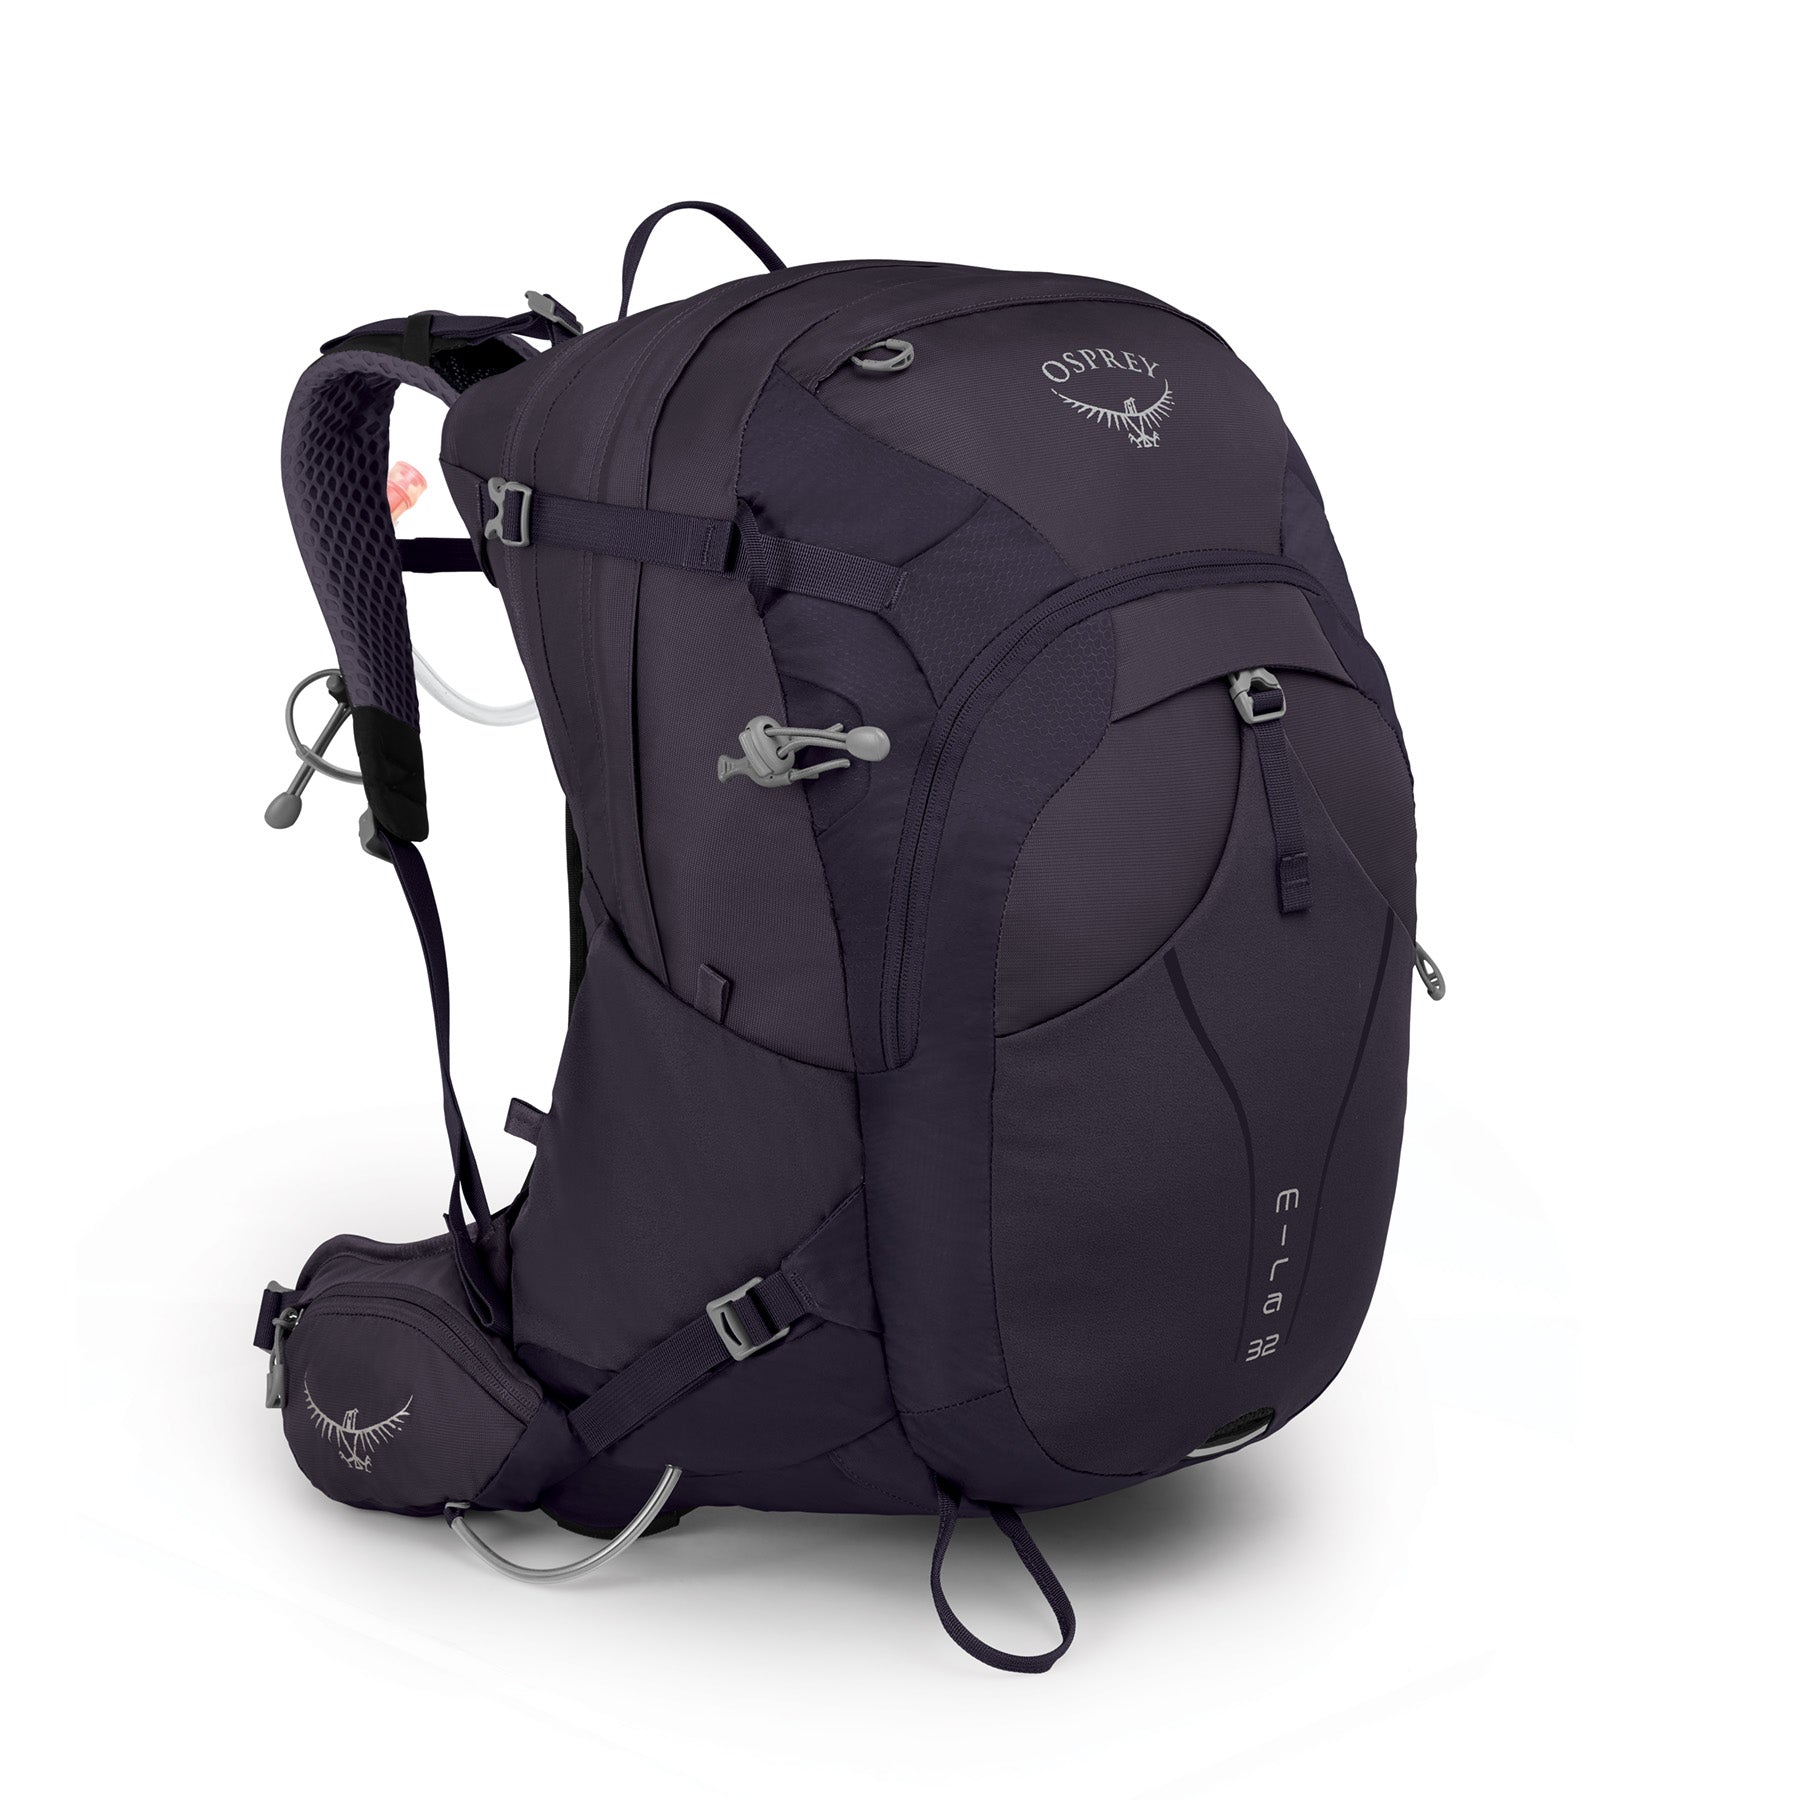 a black hydration pack